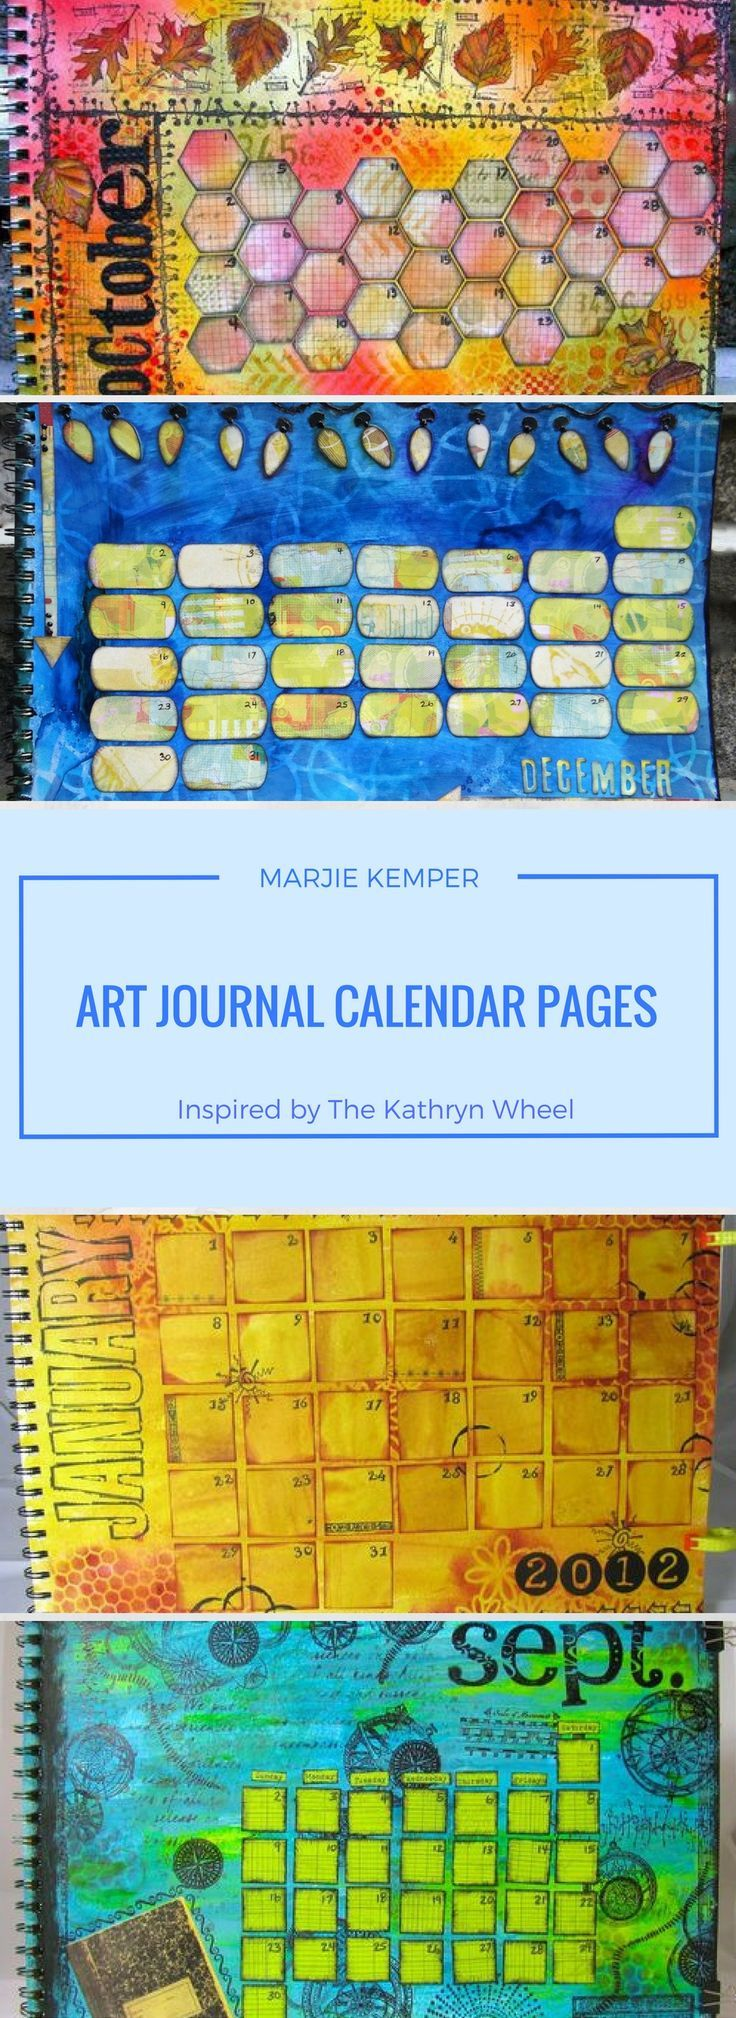 Art journal calendar pages inspired by The Kathryn Wheel (Marjie Kemper)